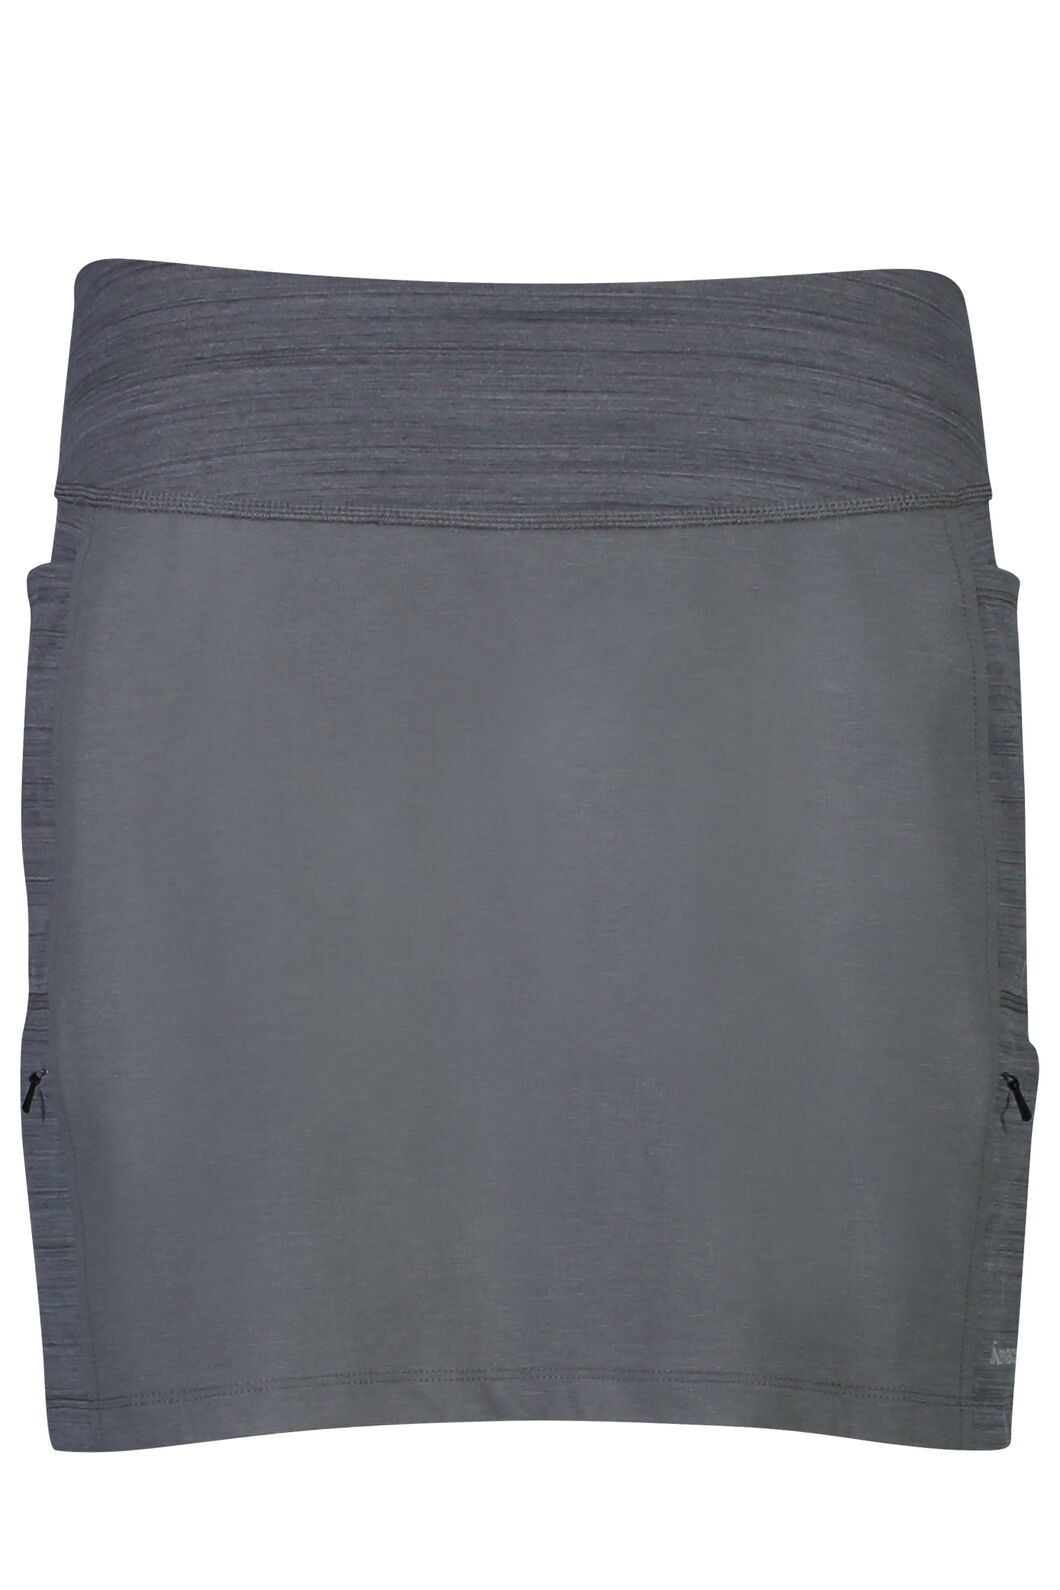 Macpac There and Back Skirt - Women's, Asphalt, hi-res